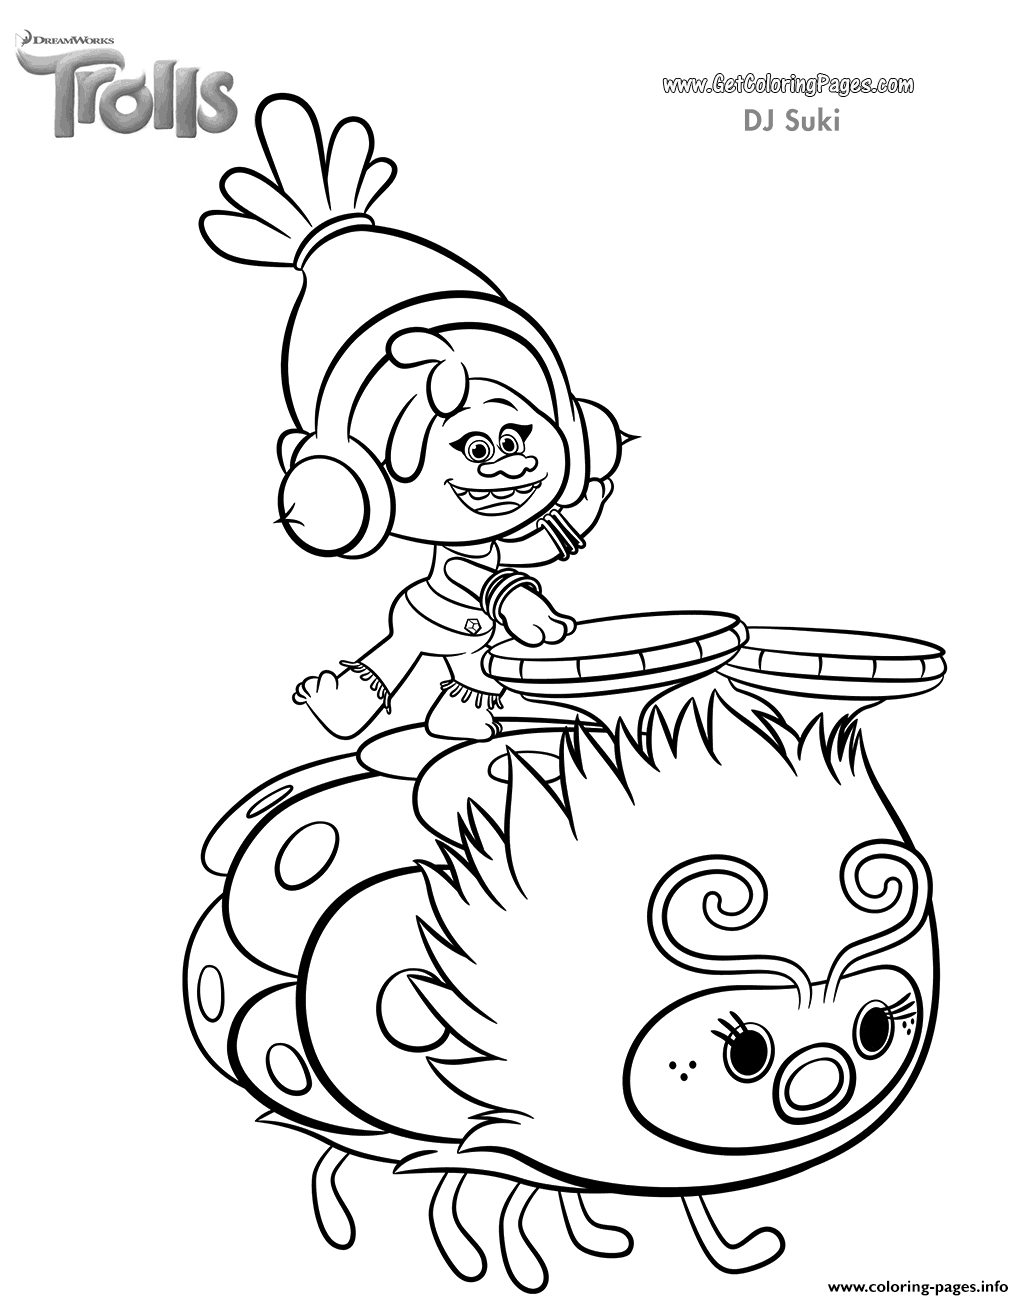 Print Dj Suki Of Trolls Movie Coloring Pages Poppy Coloring Page